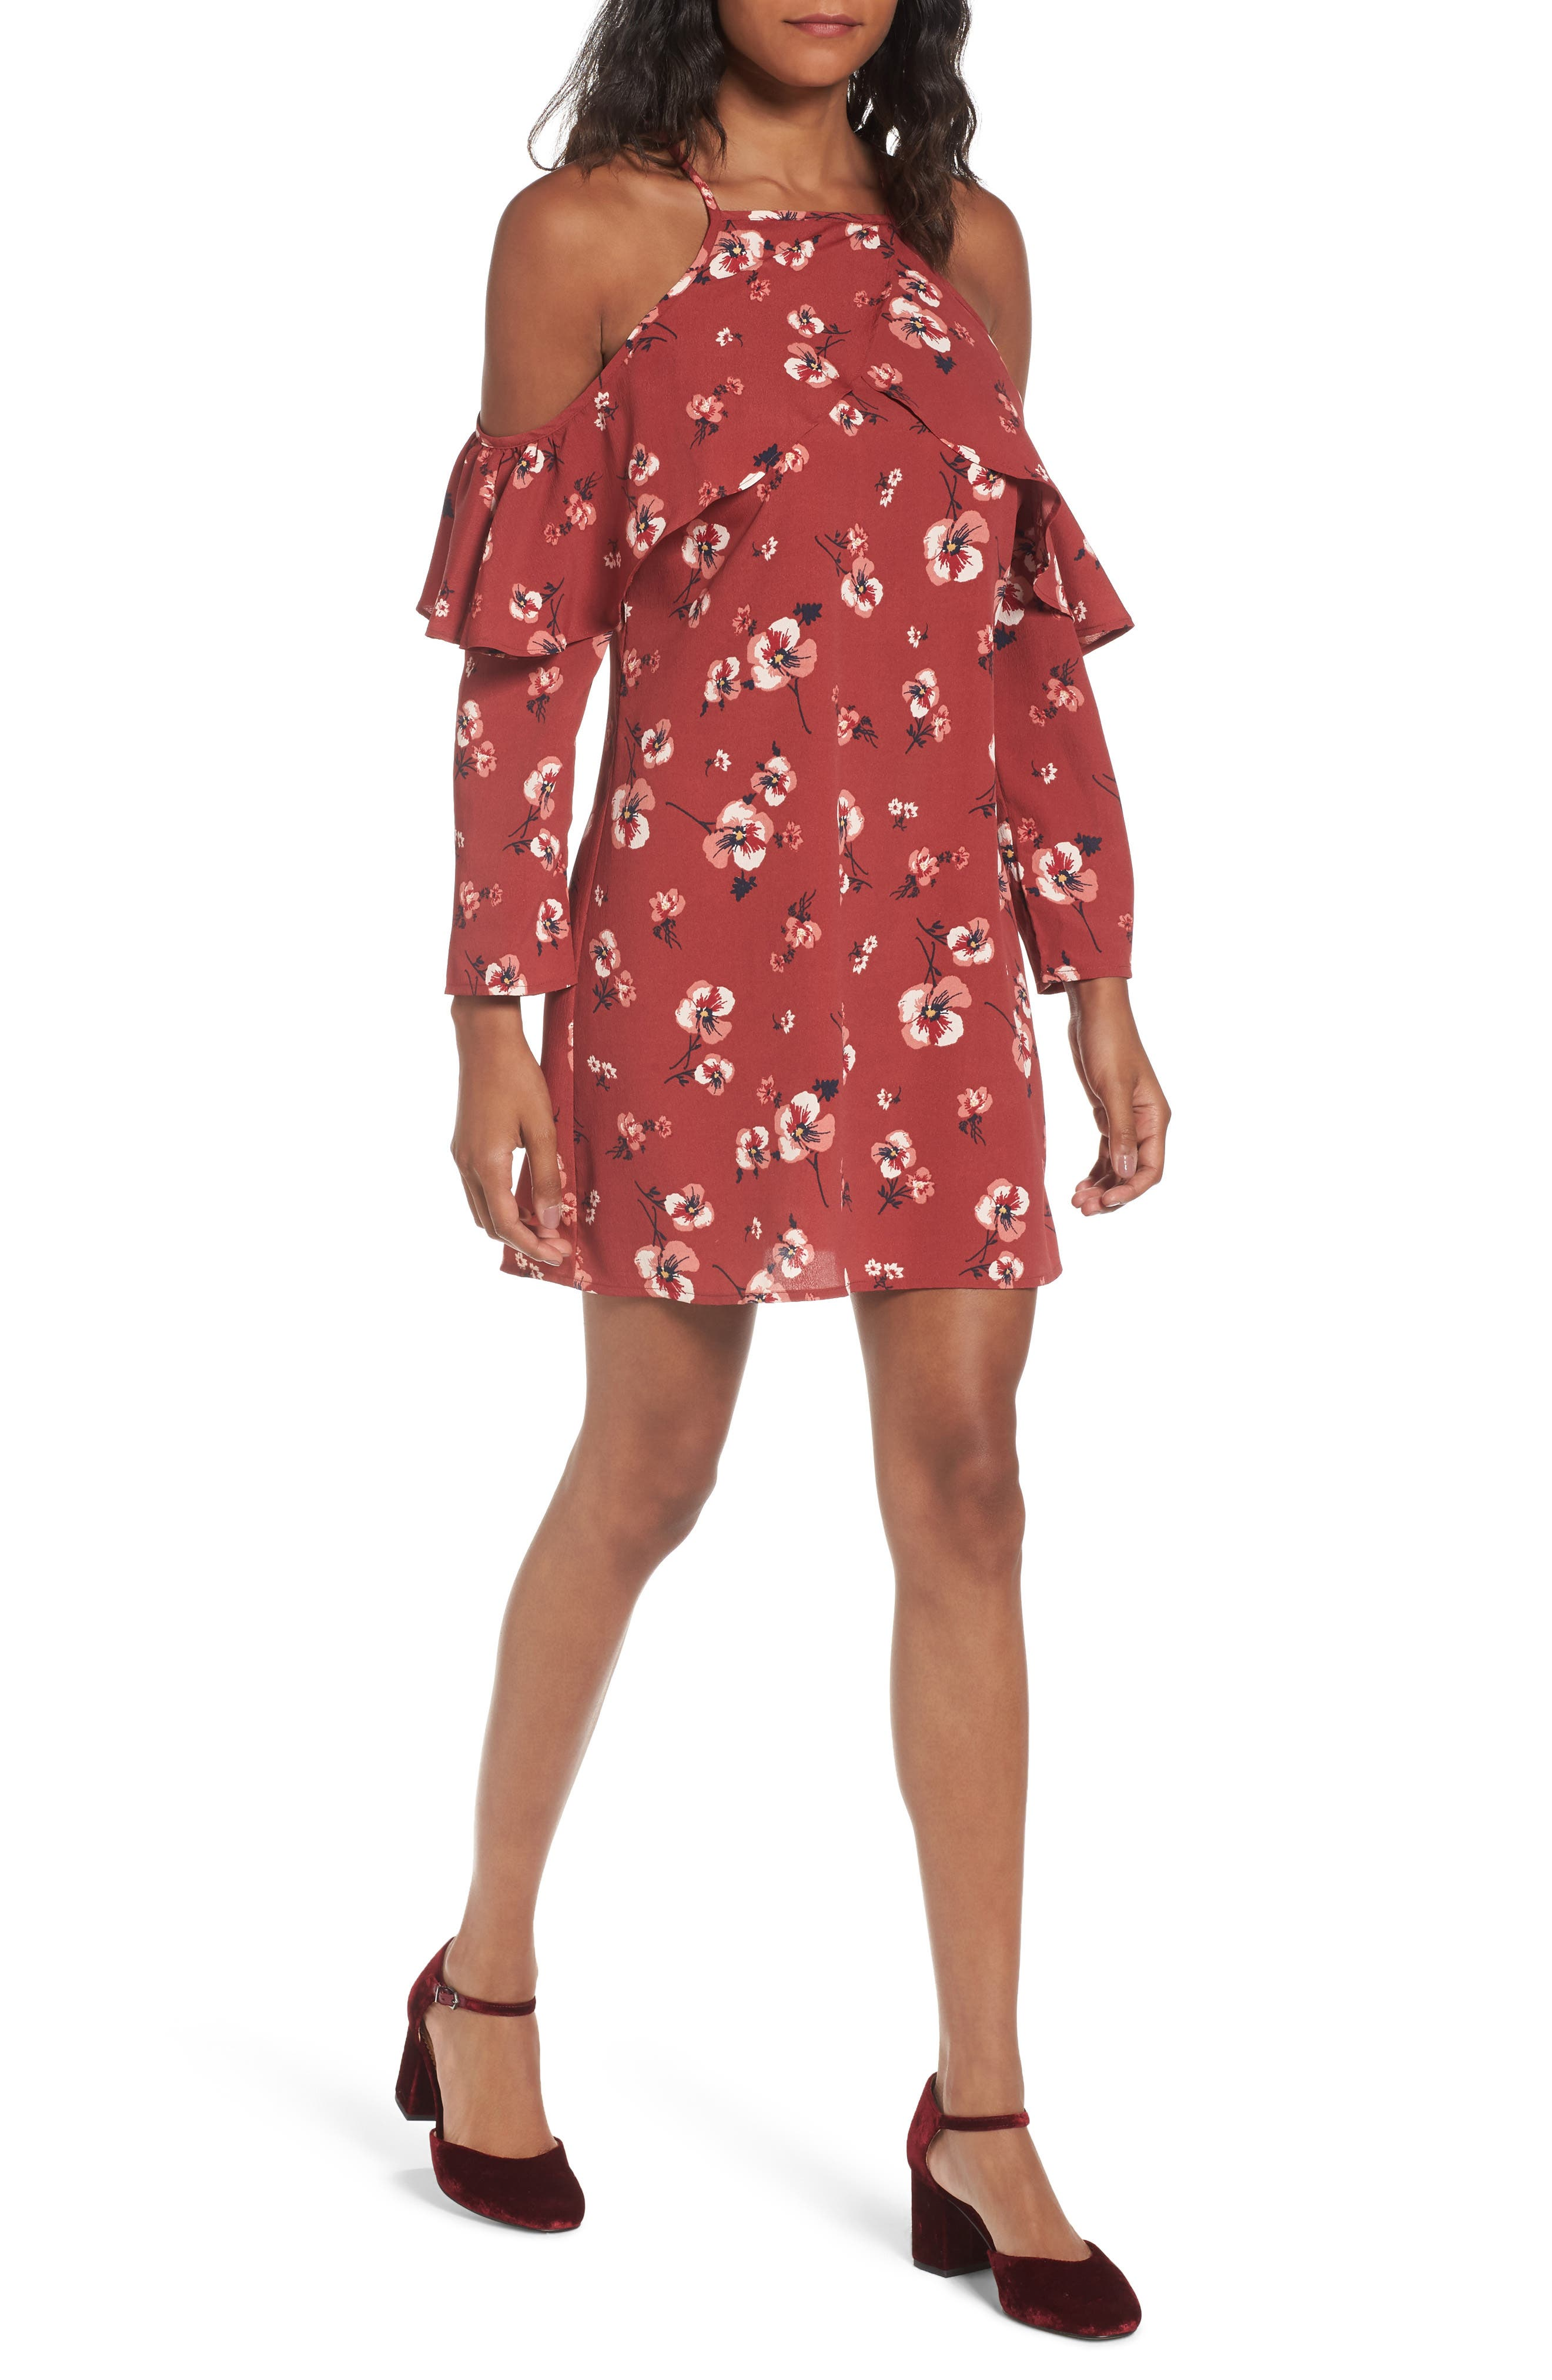 Main Image - Band of Gypsies Poppy Print Ruffle Cold Shoulder Dress